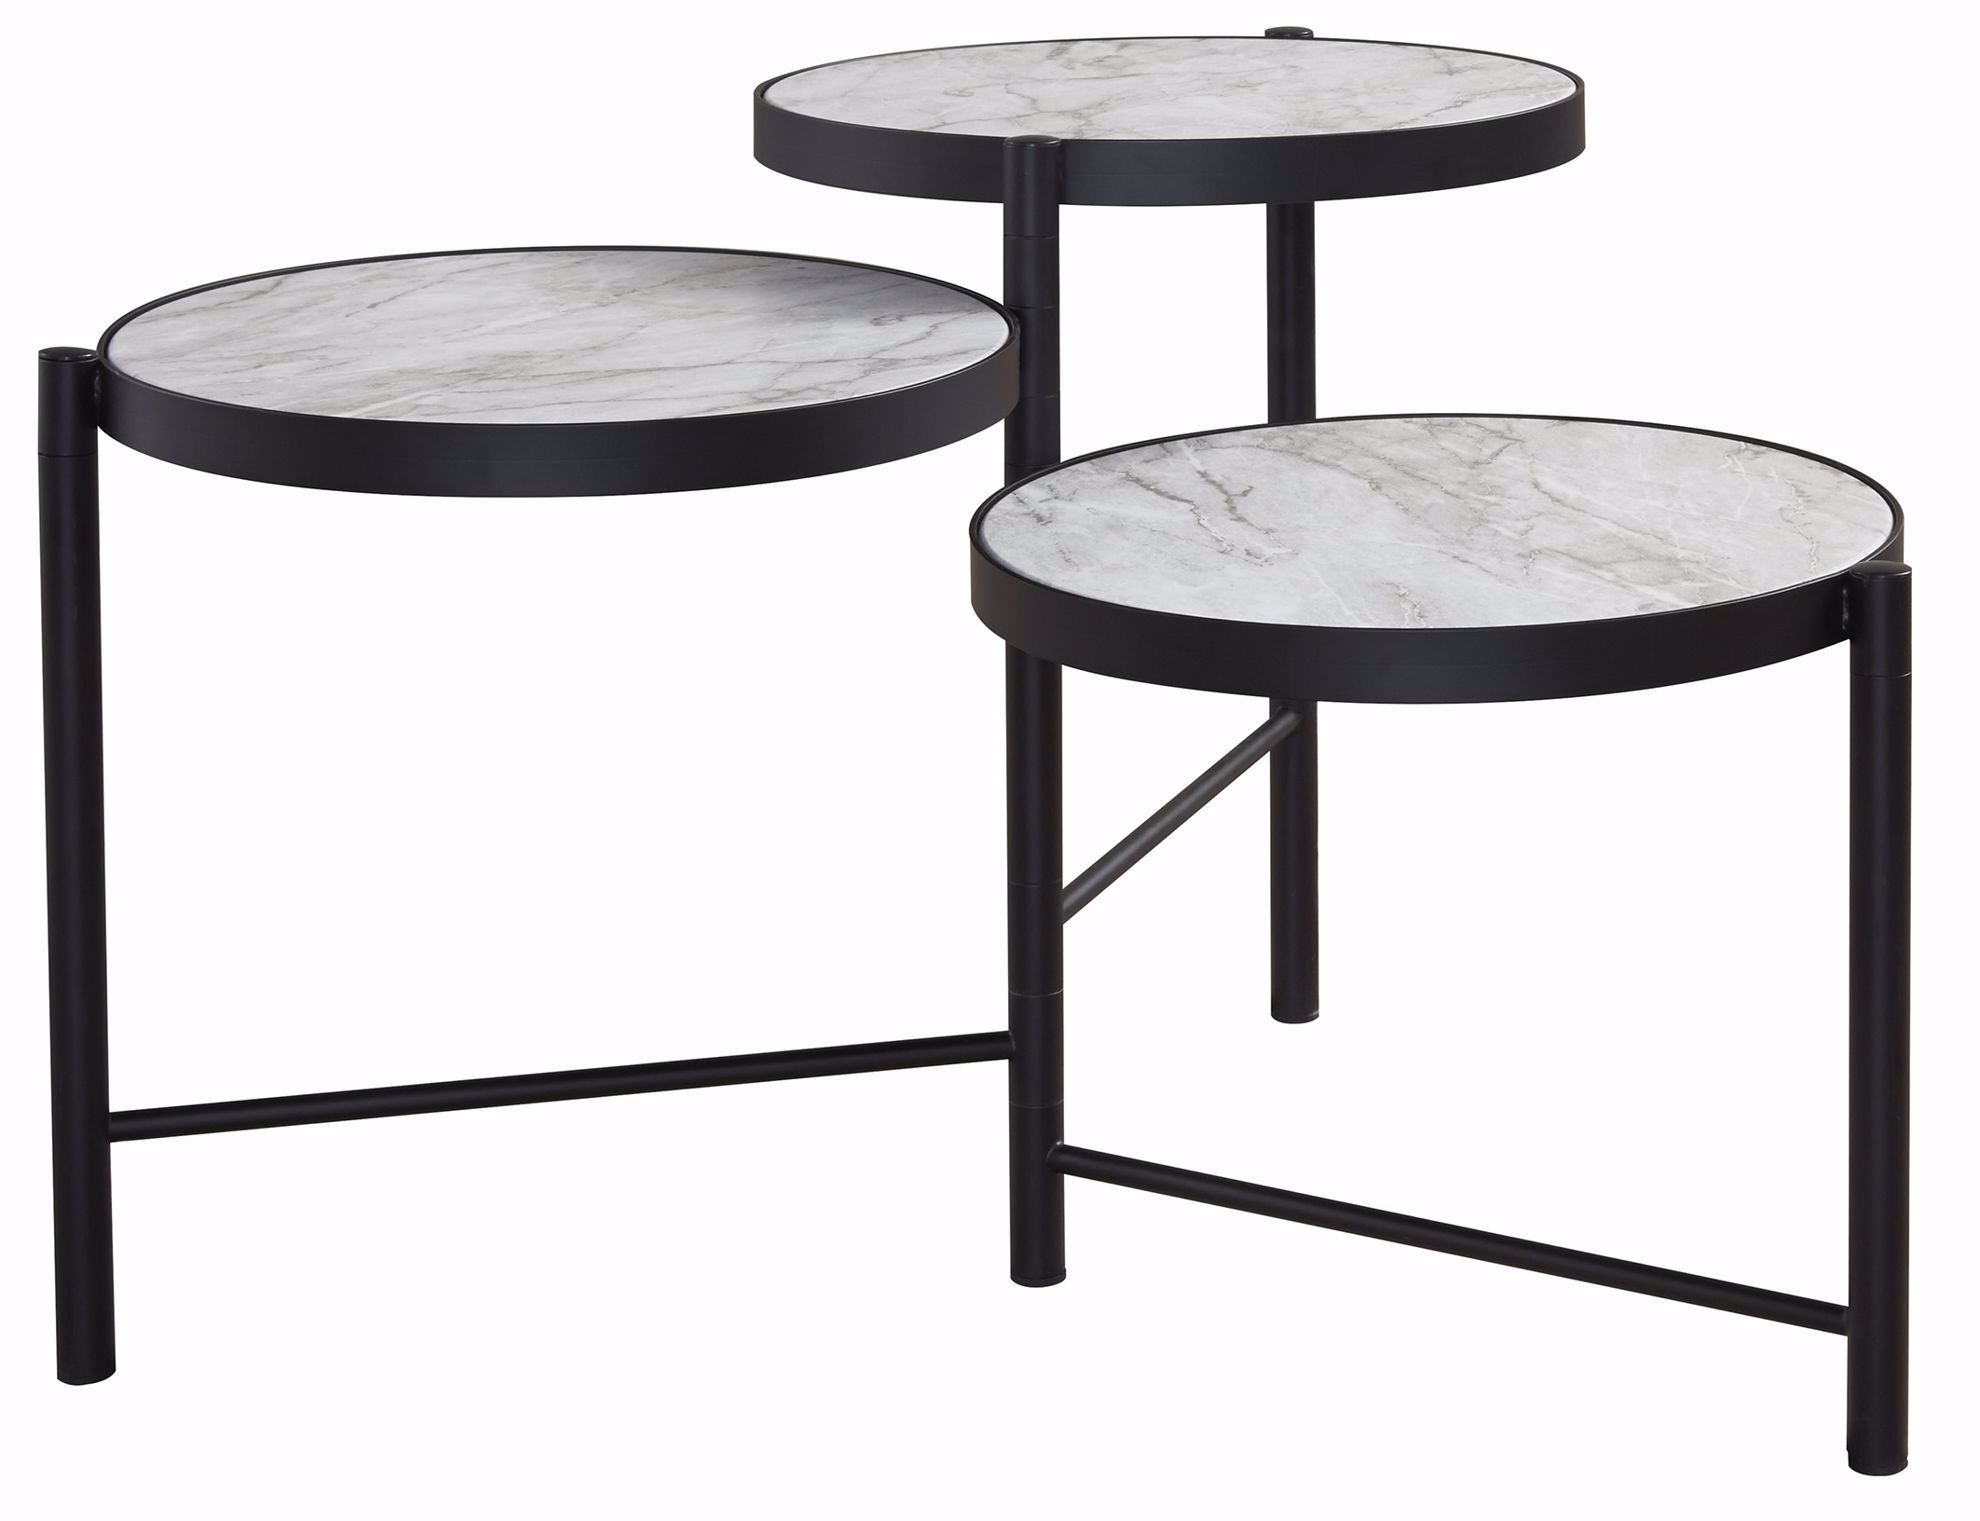 Picture of Plannore Black-White Round Cocktail Table